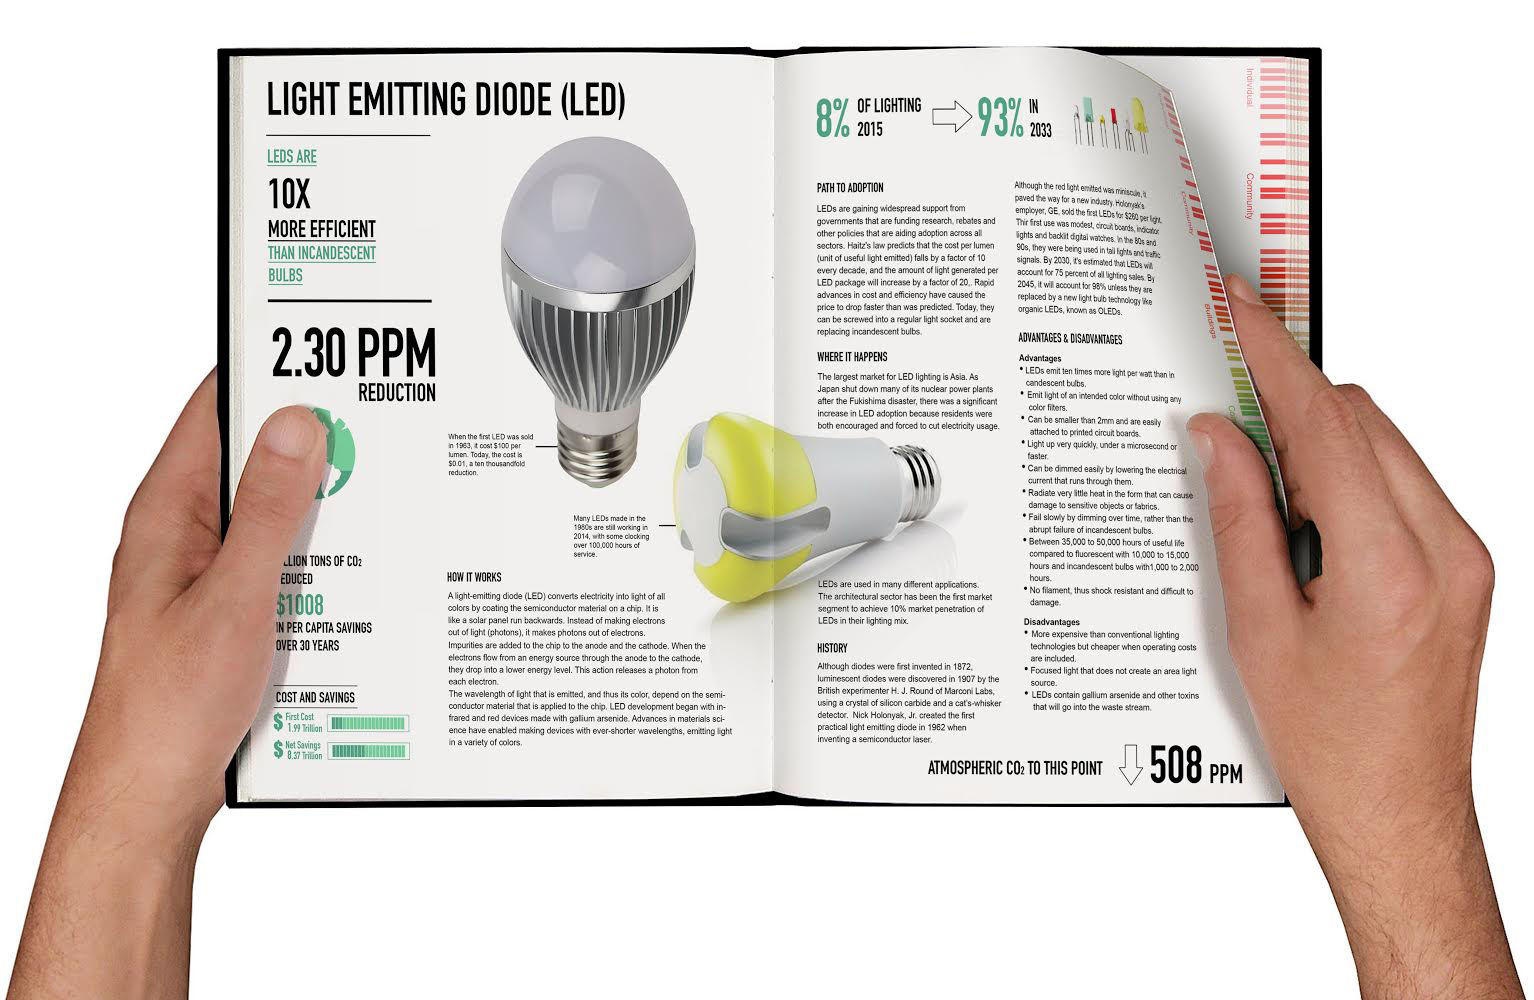 Led light, presented in Project Drawdown's book